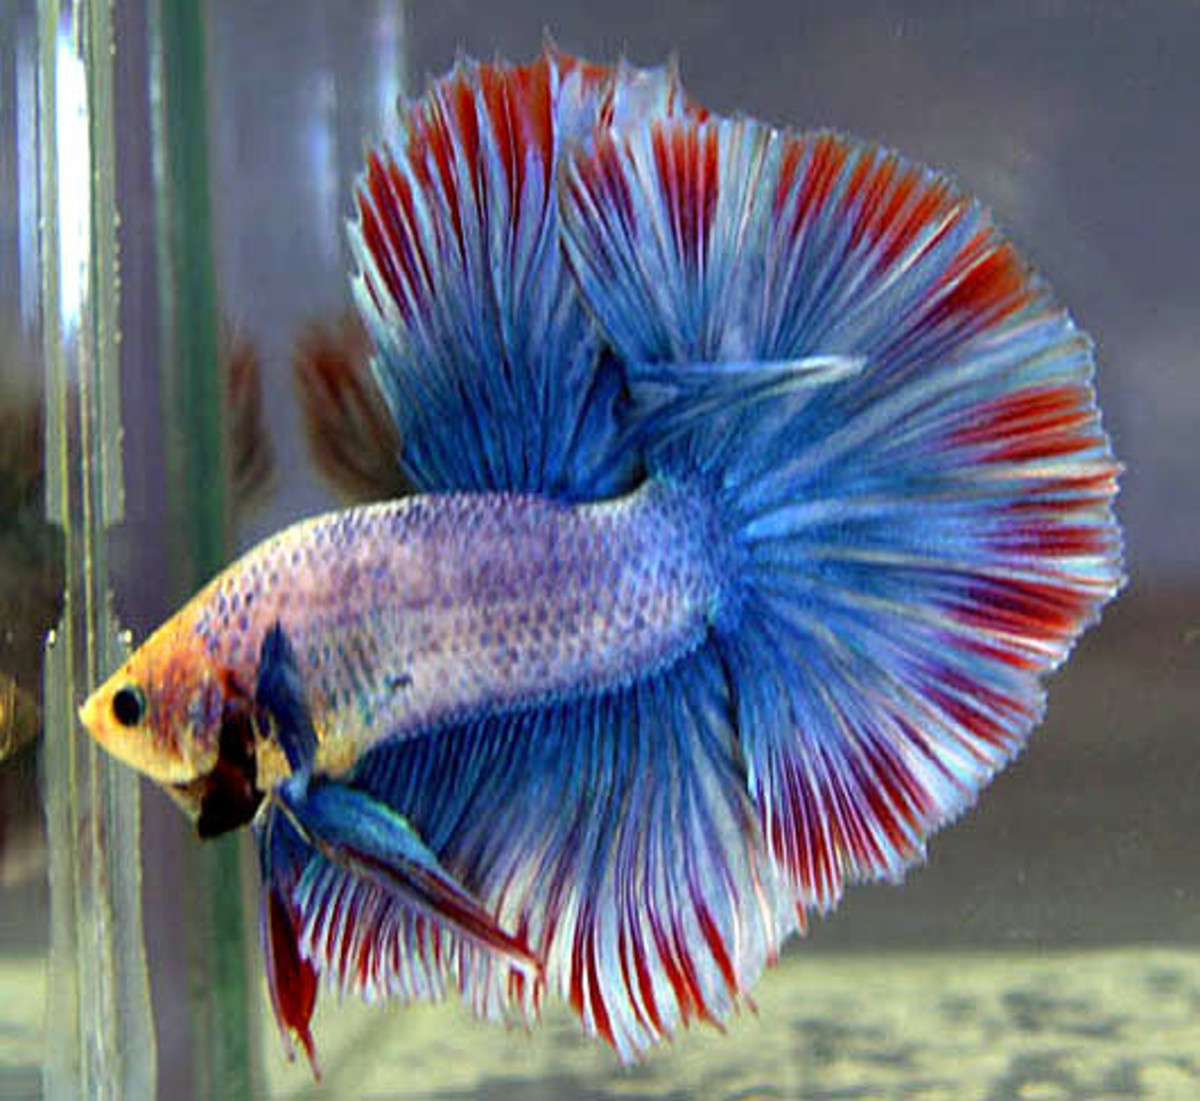 A cool Betta fish!